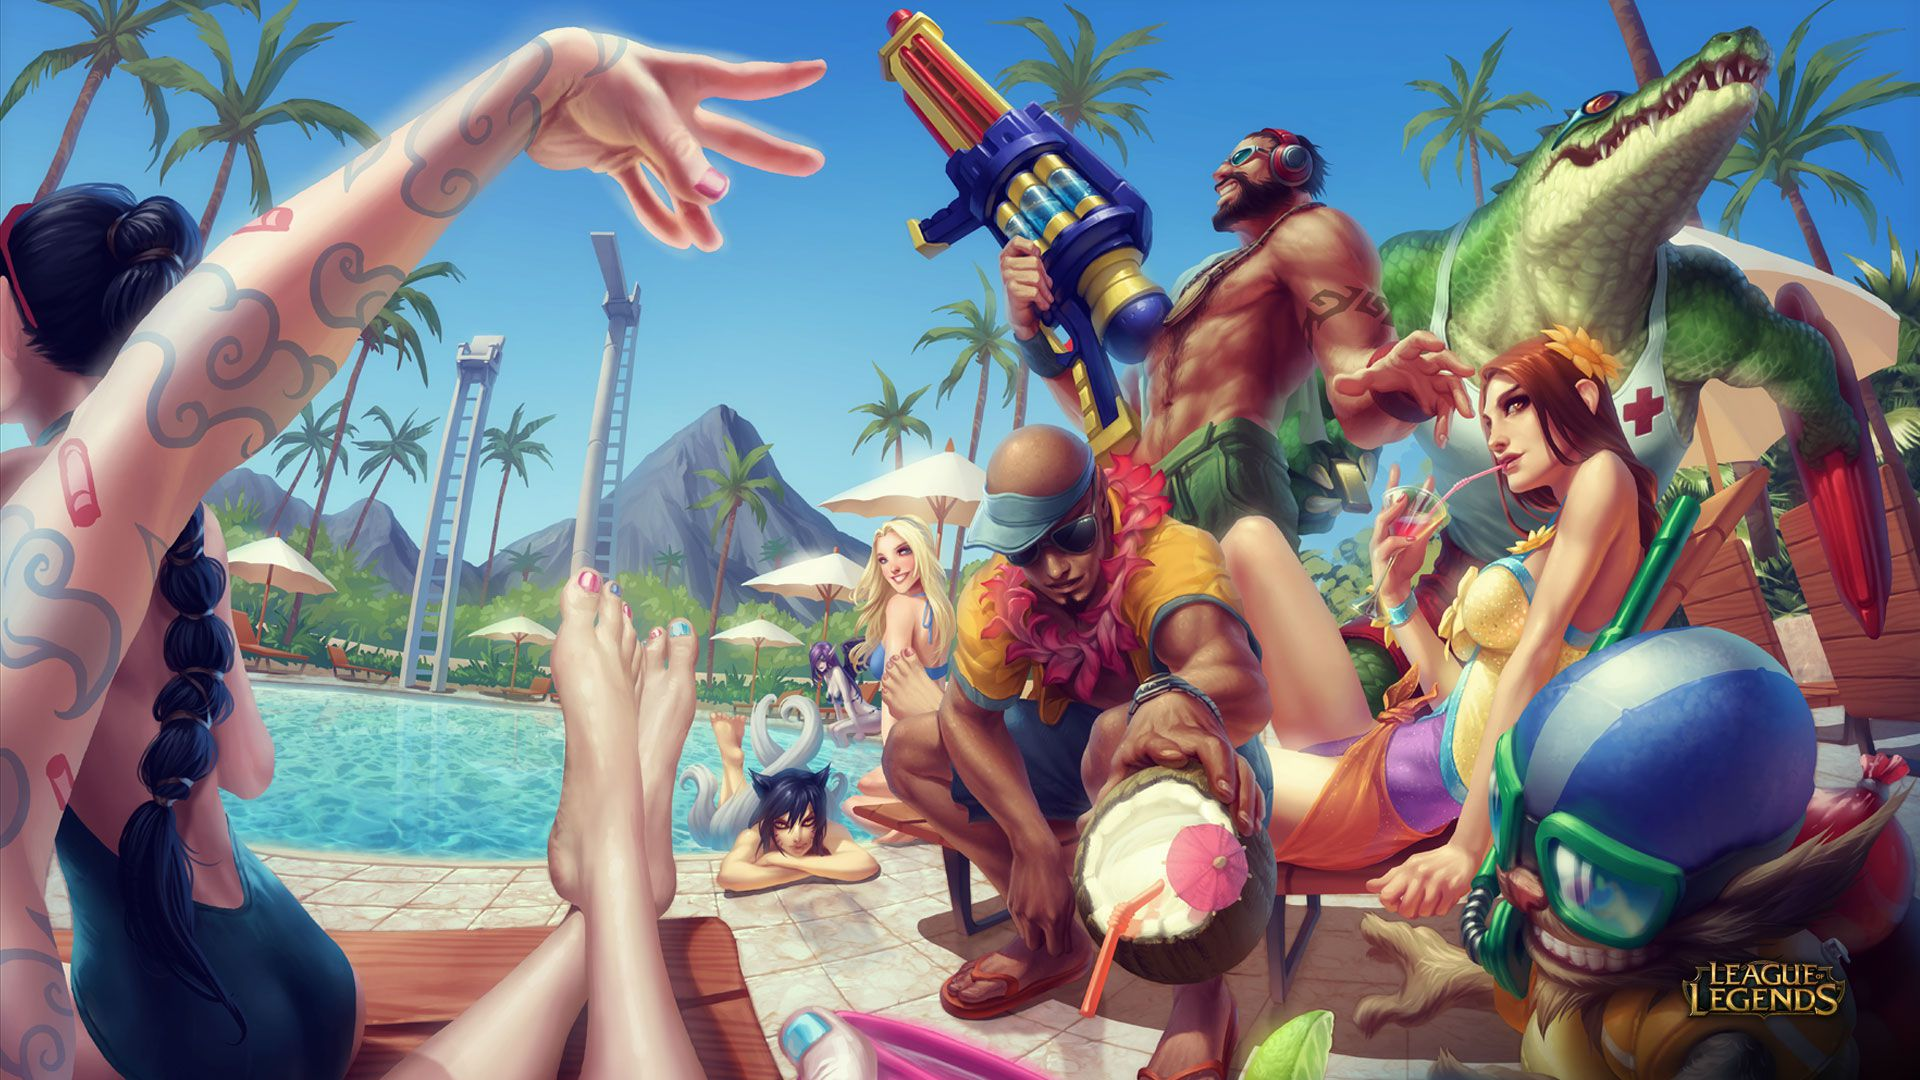 Funny Pool Party Wallpapers - League of Legends